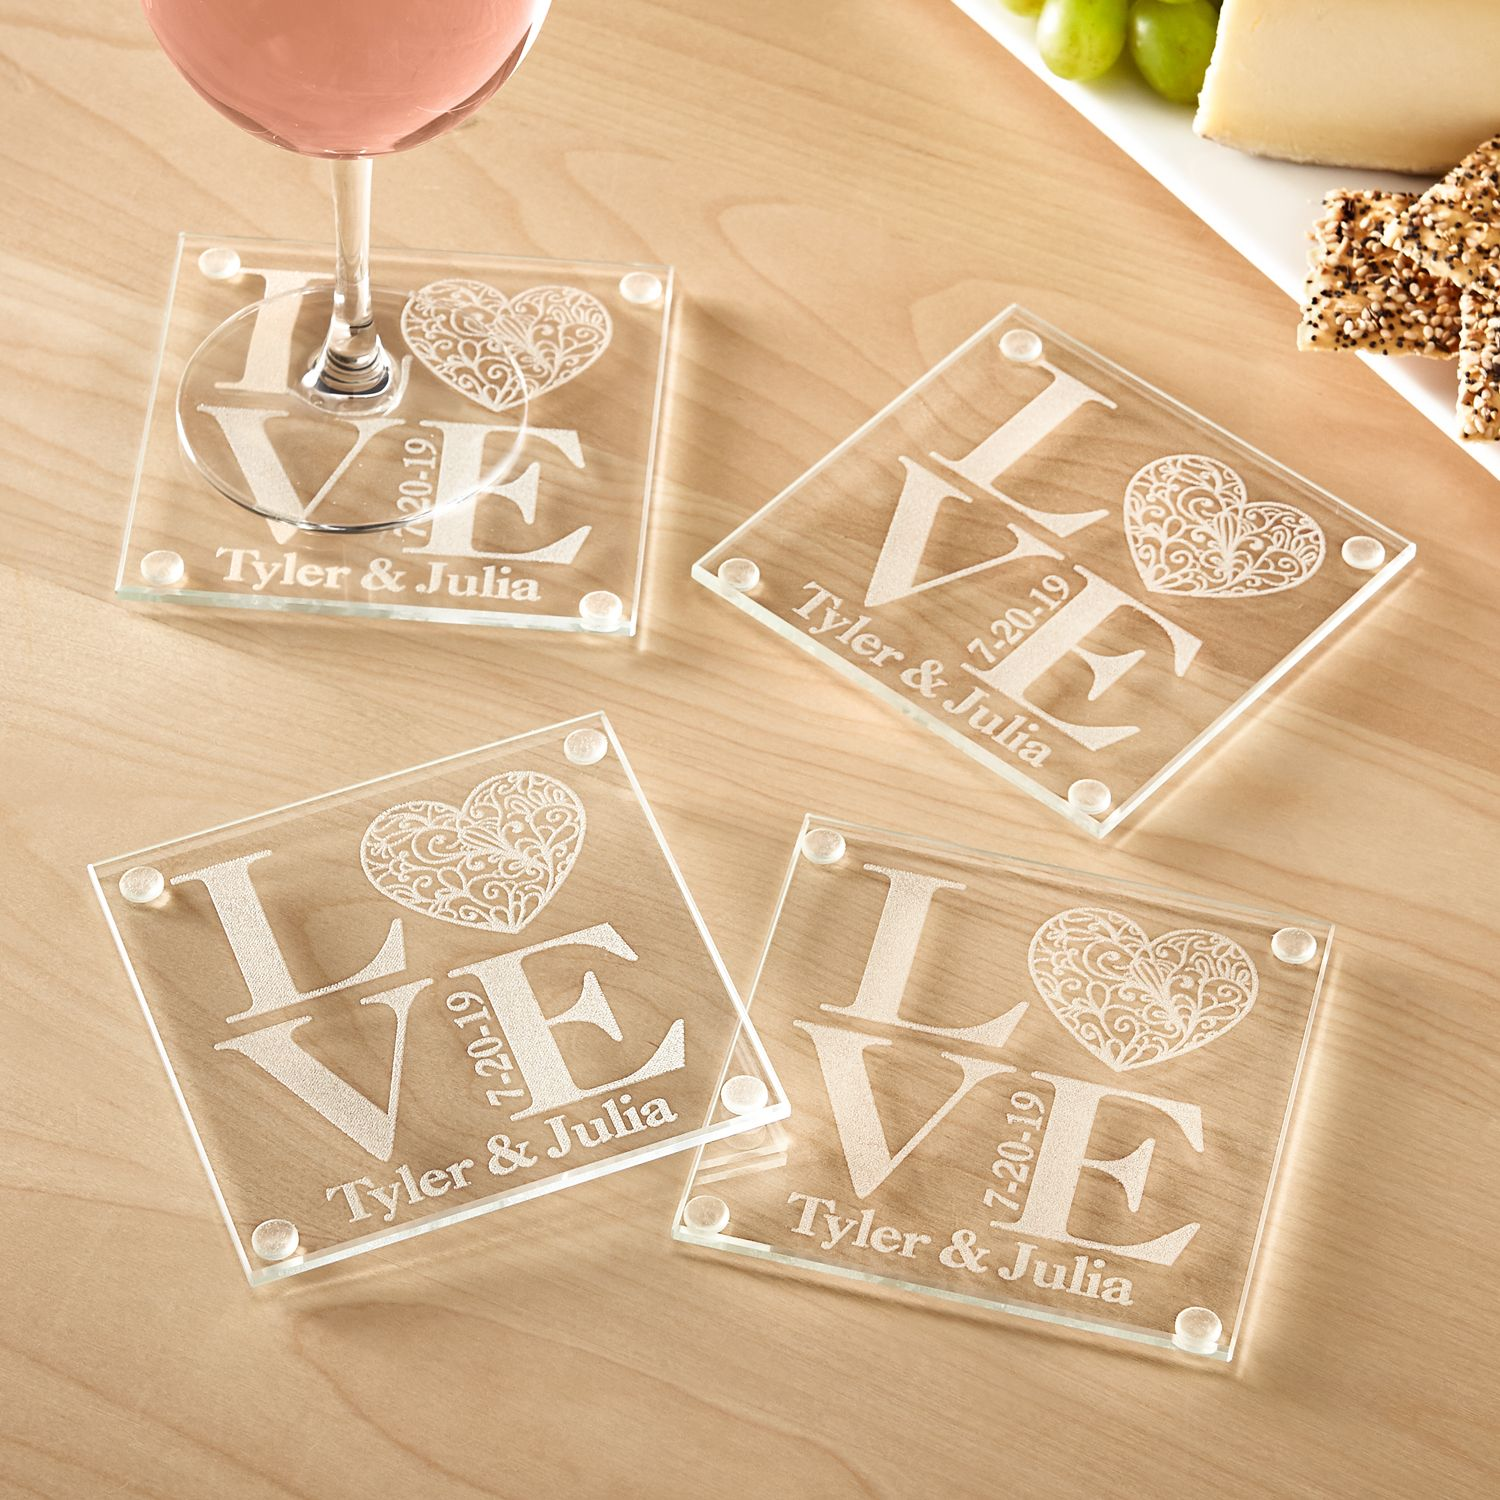 Personalized Our Love Glass Coasters - Walmart.com Personalized